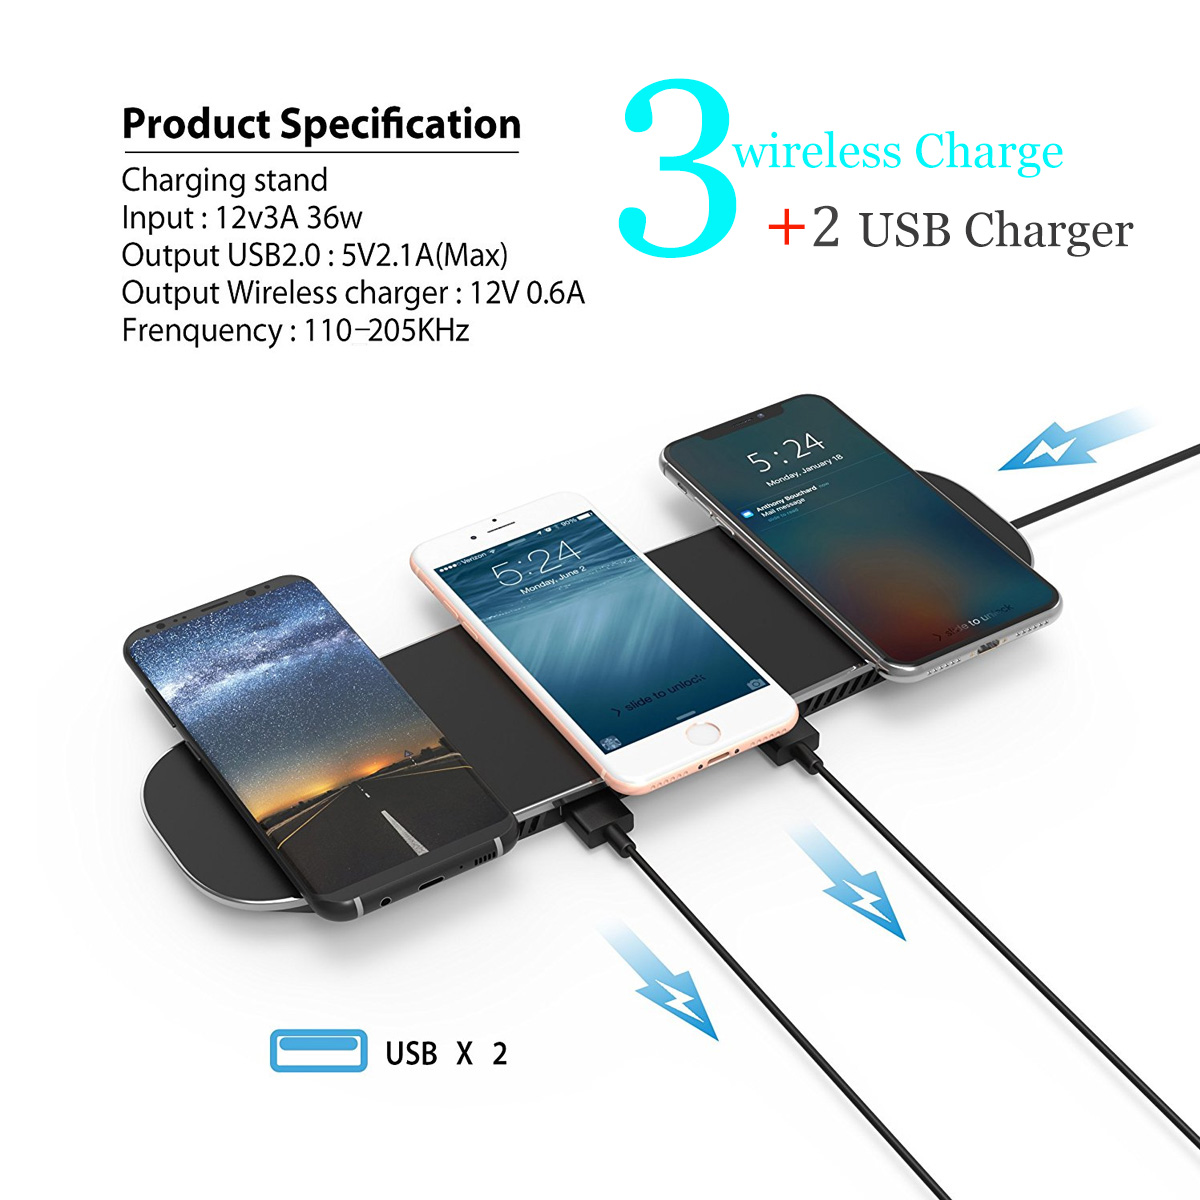 Qi Triple Wireless Charger Station,3 Devices Multi Wireless Charger Pad,Desktop Charging Station for iPhon e X, iPhon qi charger e 8/8Plus, Galaxy S8+ S7/S7 Edge Note 8/5, Nexus 5/6/7